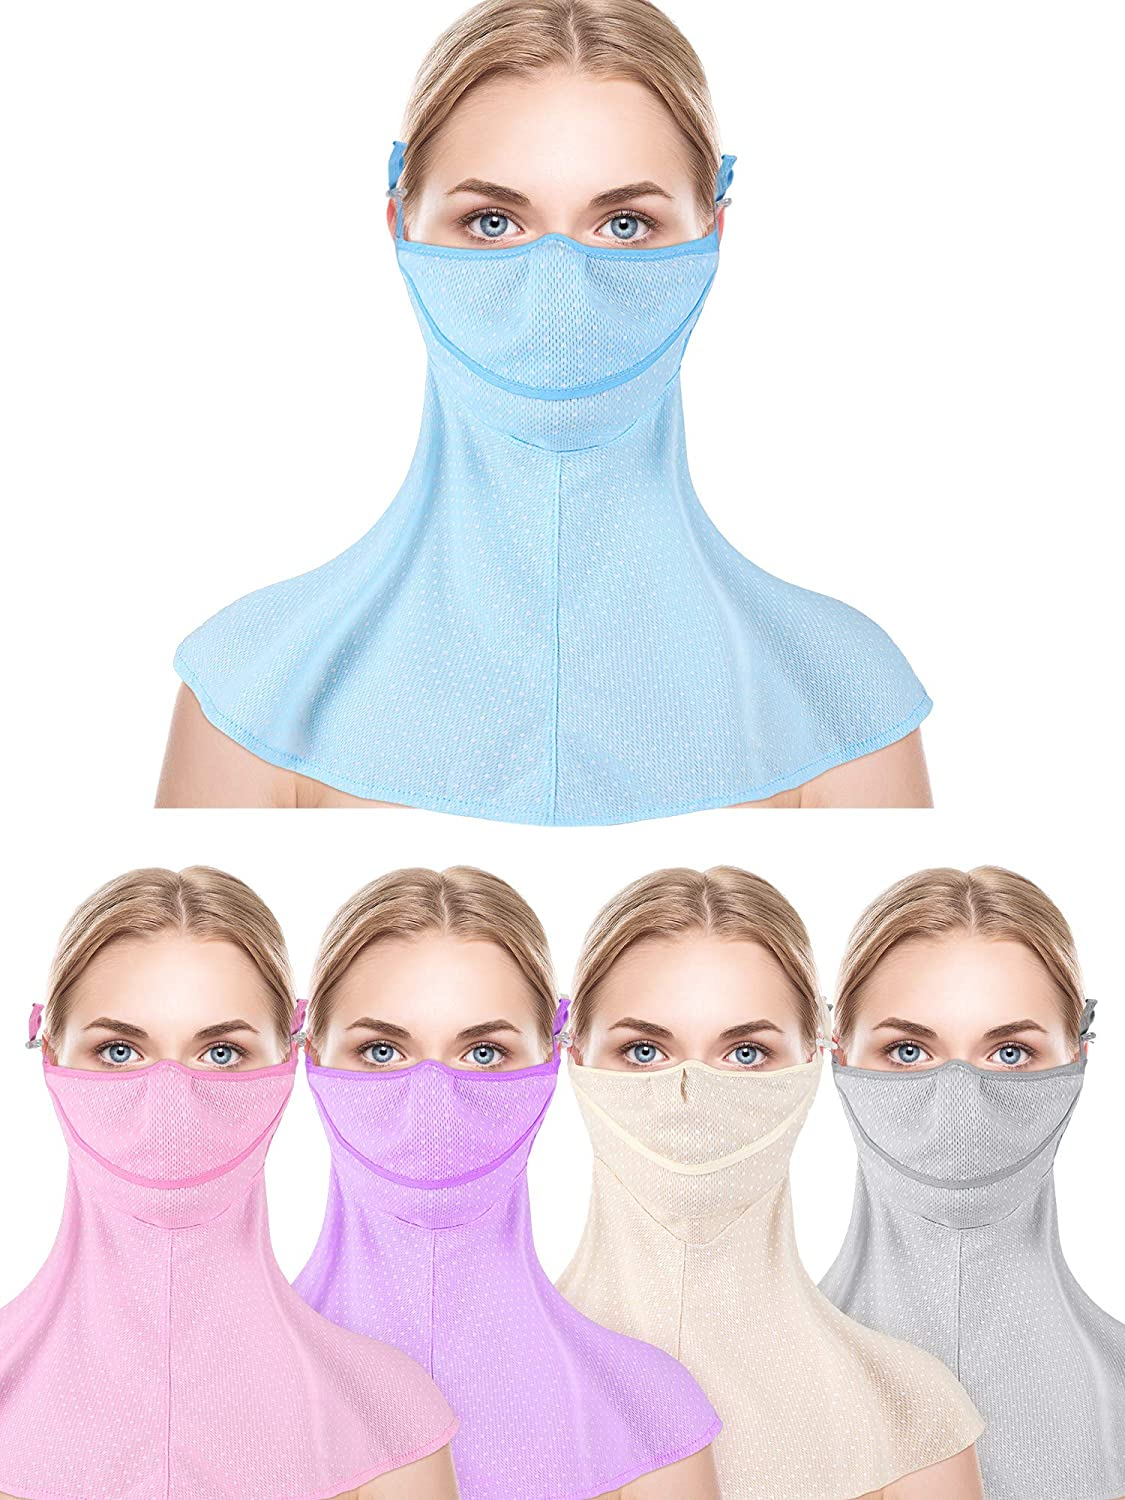 5 Pieces Sun Protection Face Scarf Summer Neck Gaiters Breathable Balaclava Face Covers for Women